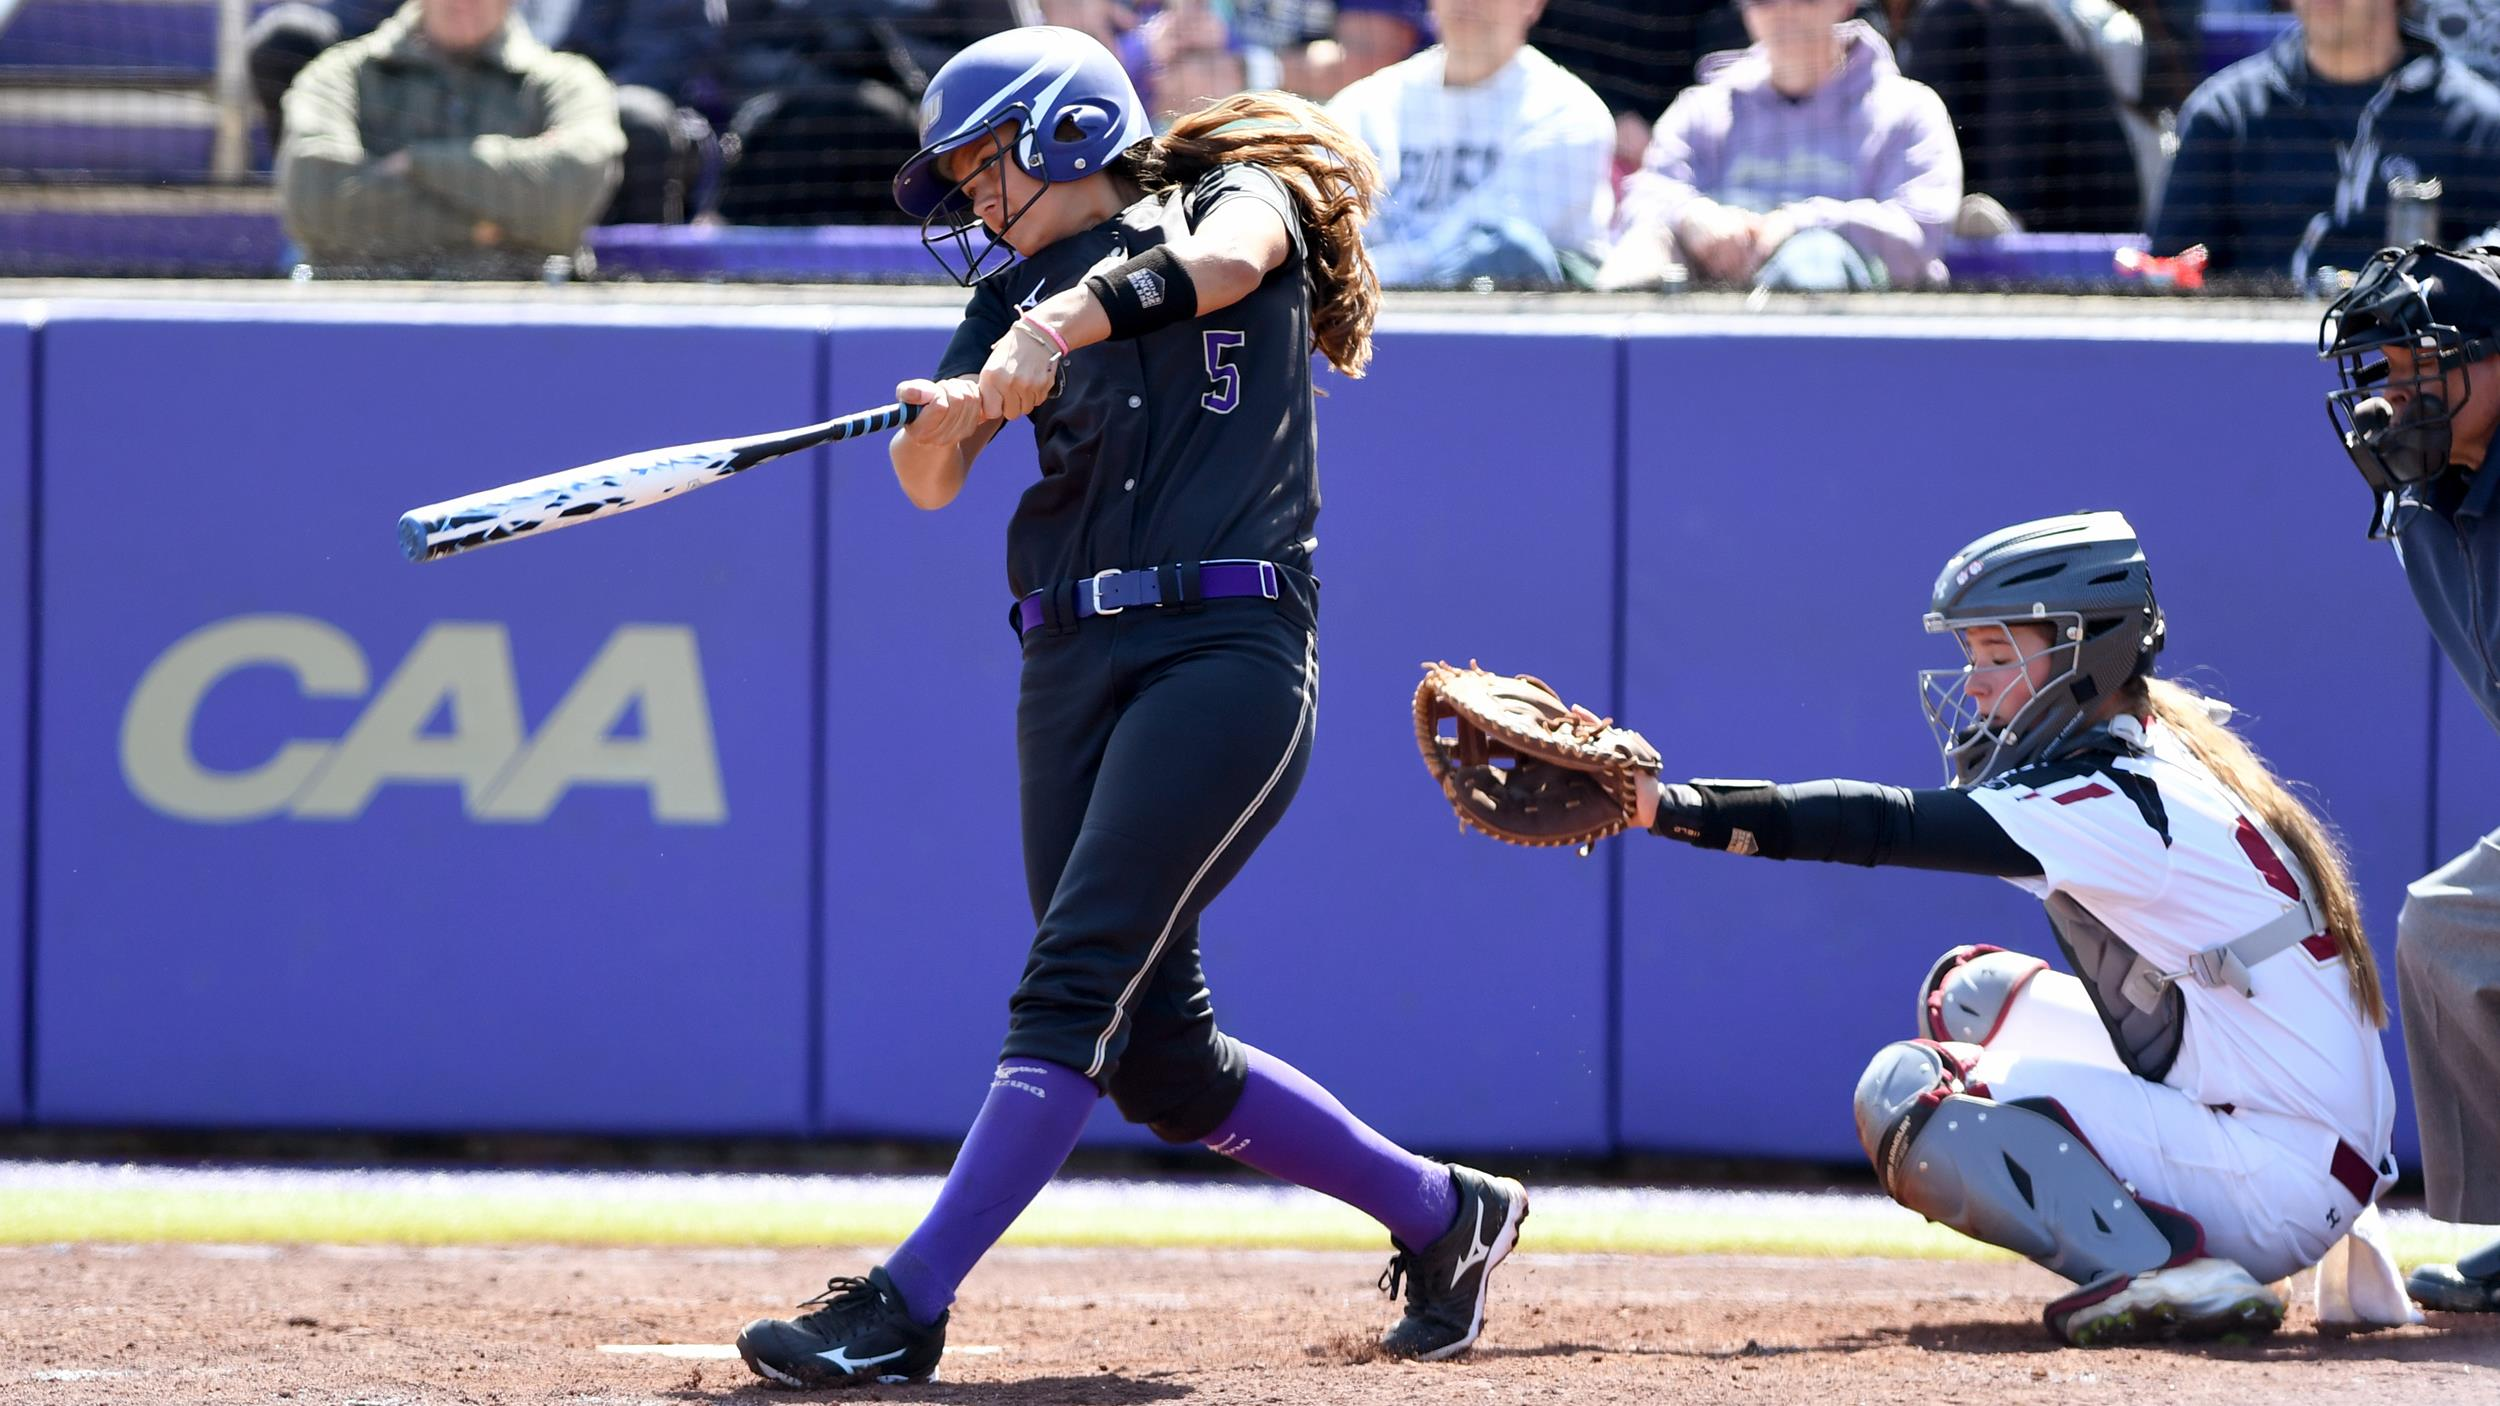 Softball: Dukes Grind Out Wins Over UCF, Jacksonville)